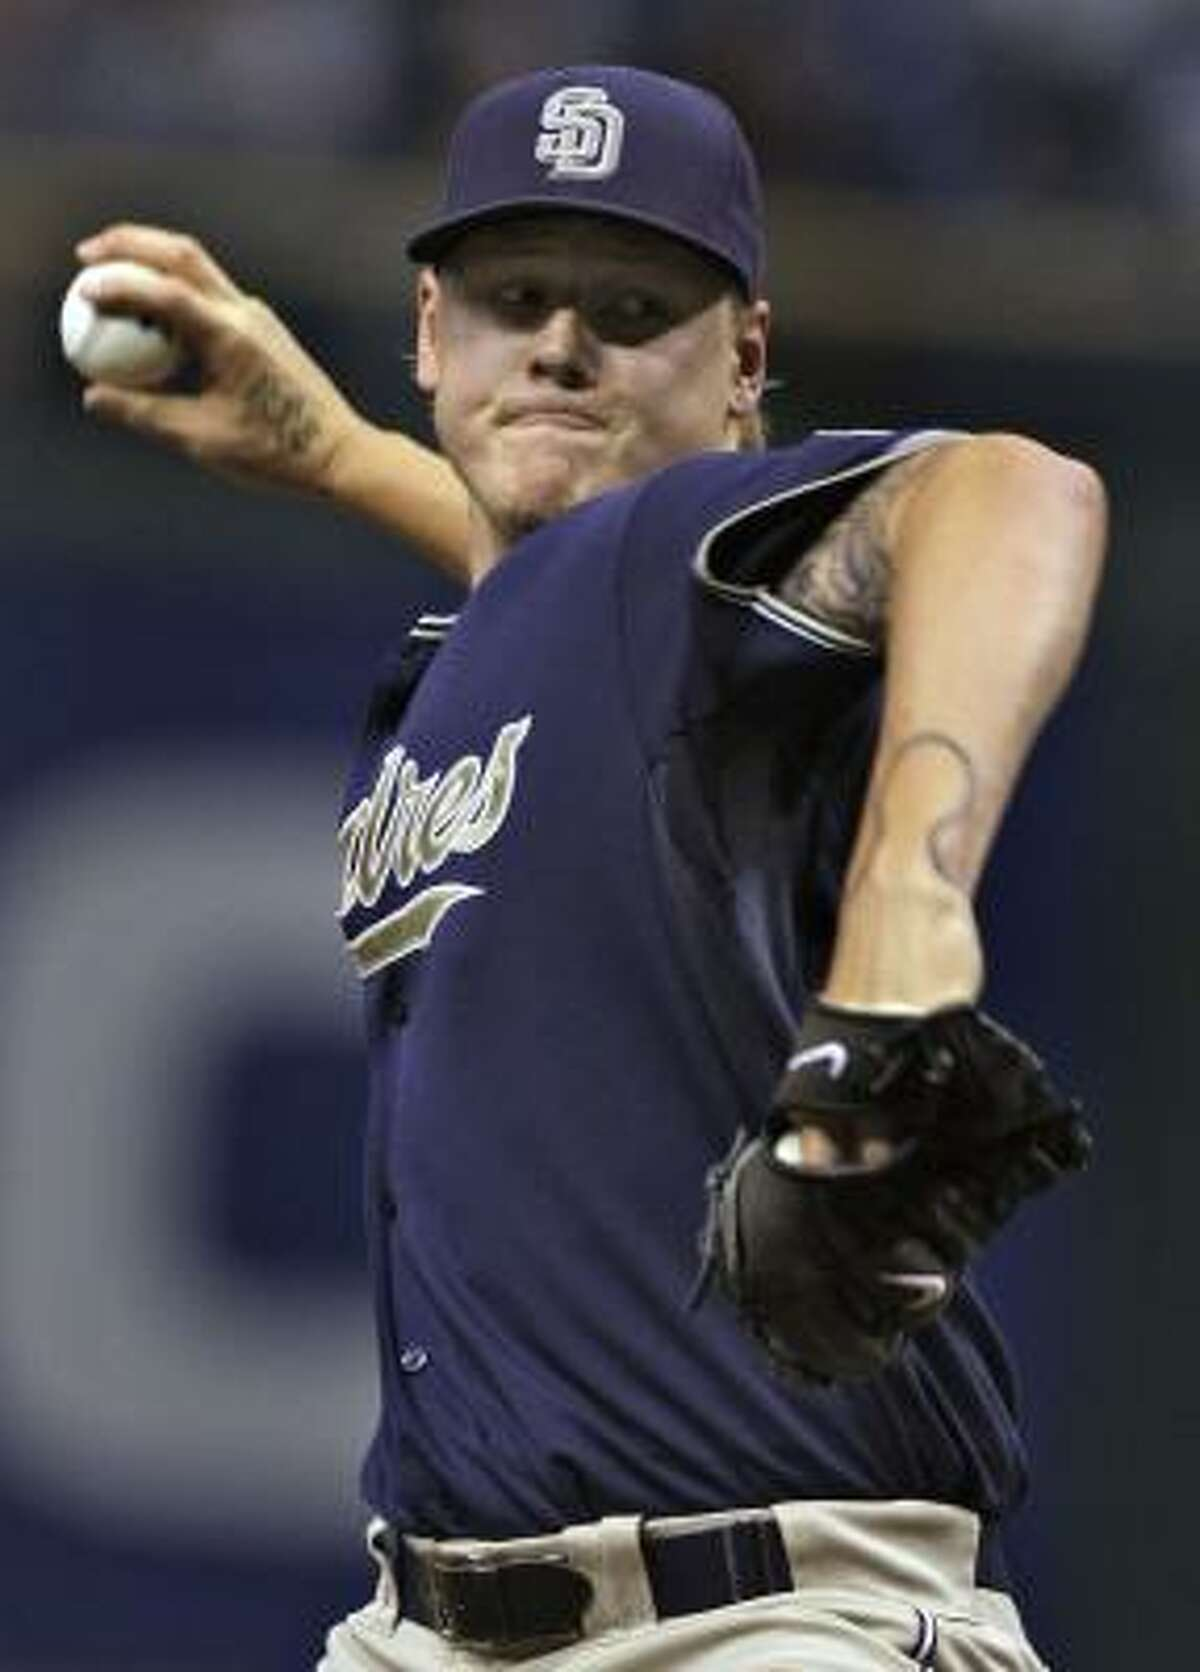 Mat Latos, Padres: This team leads the division because of its pitching, but none of the Padres pitchers were selected to play in the All-Star Game. Latos has a 2.62 ERA and he's tied for fourth in the league with nine wins.